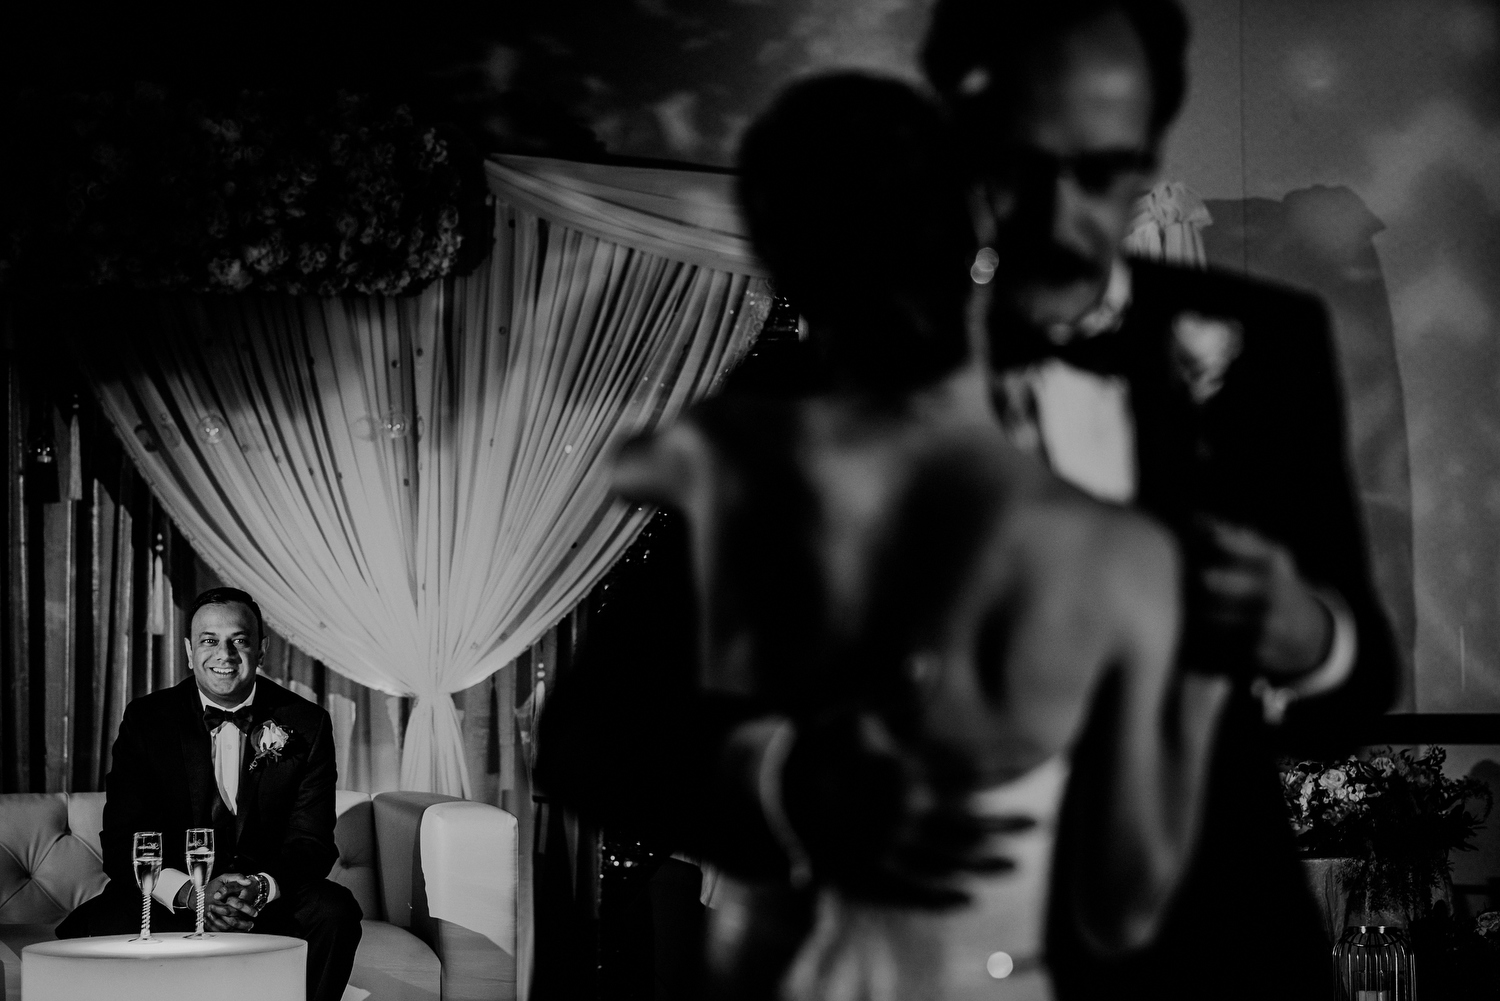 emotional father daughter wedding dance as groom looks on